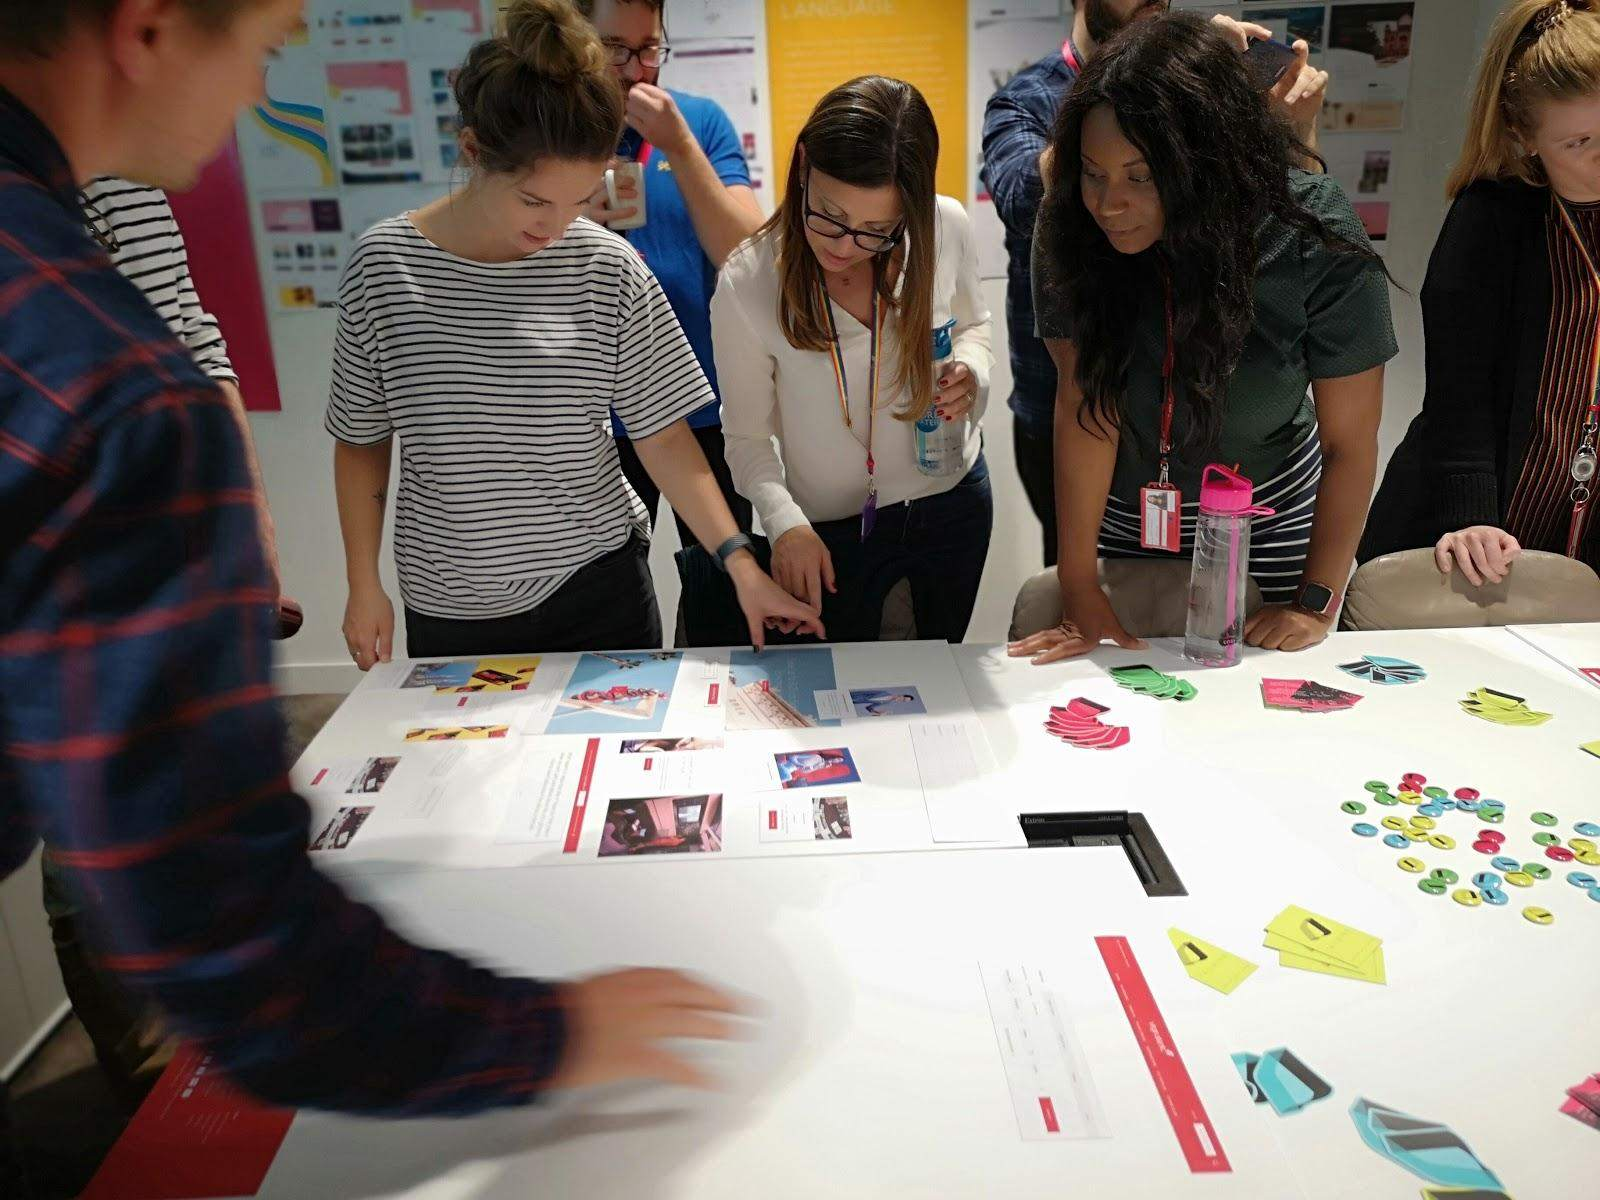 Virgin Atlantic designers discuss and showcase design ideas.